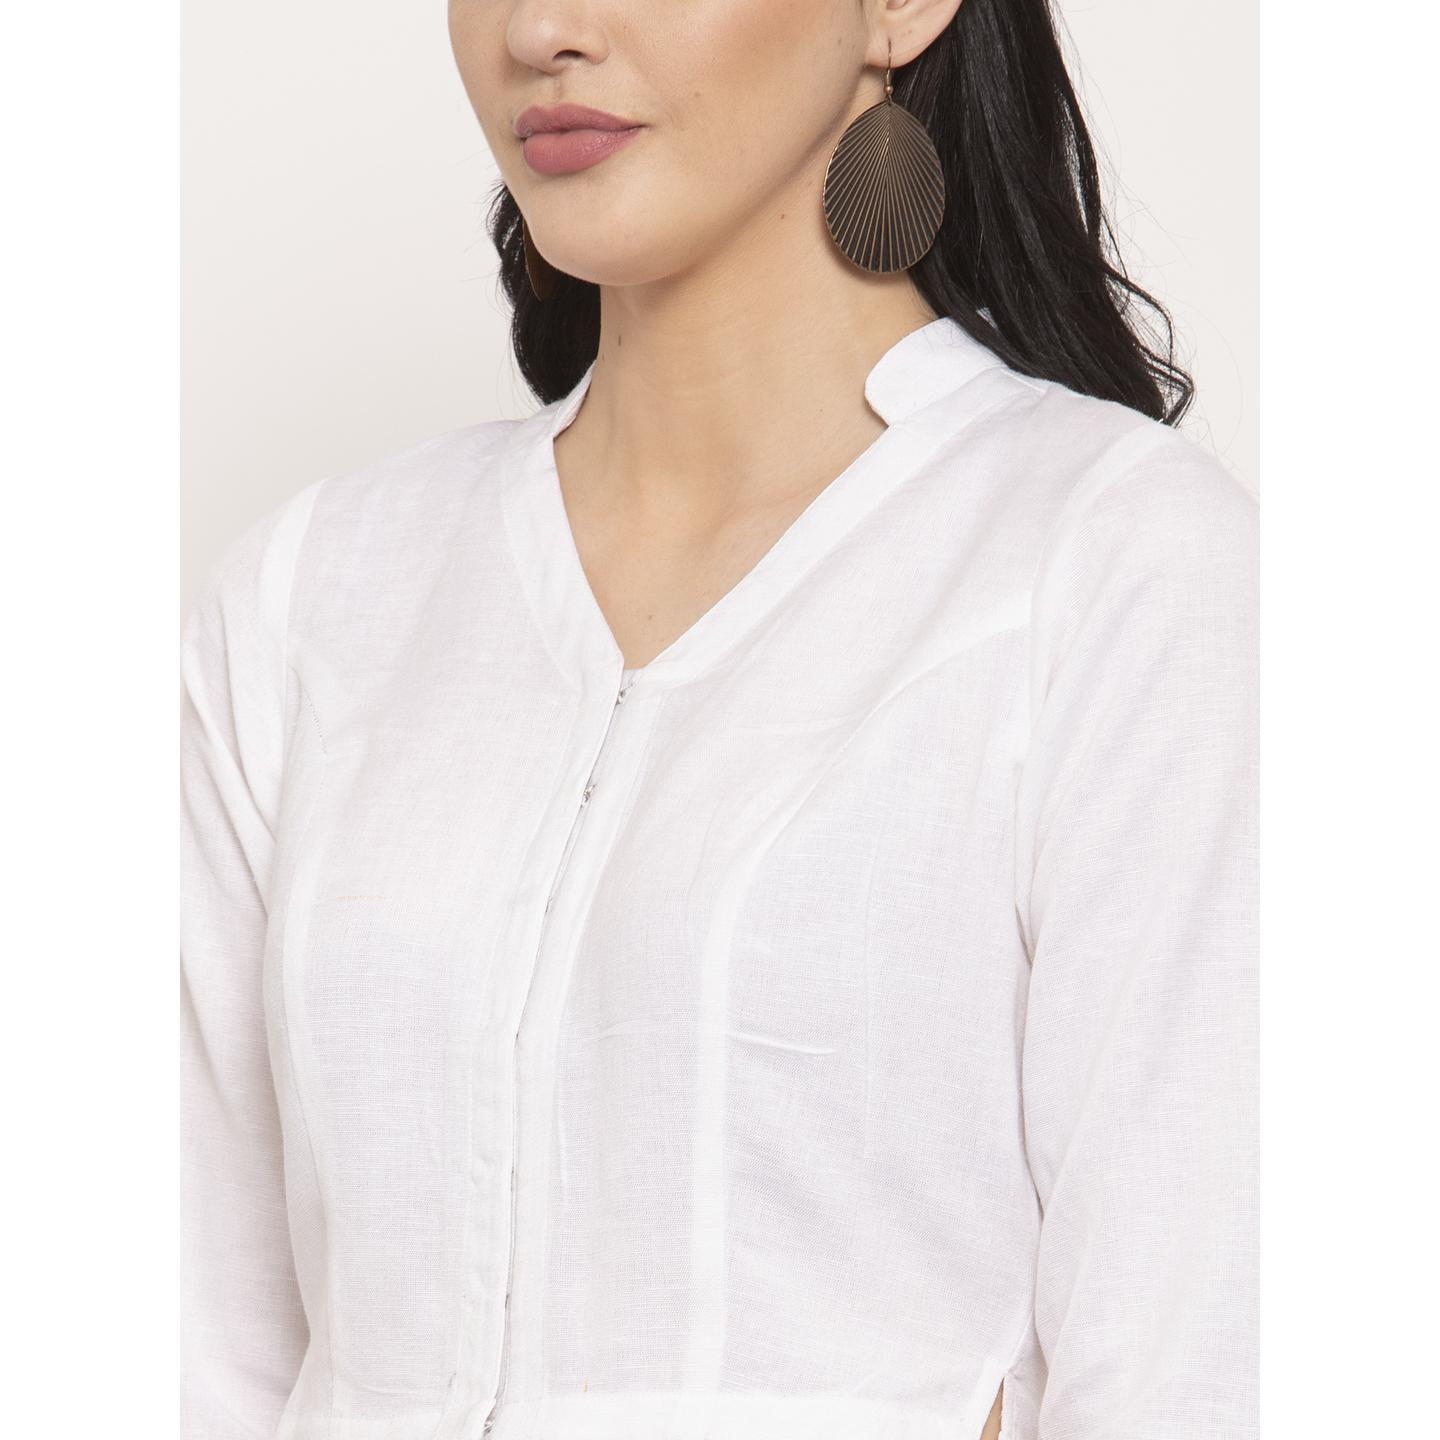 Ayaany - White Colored Casual Wear Pure Cotton Blouse